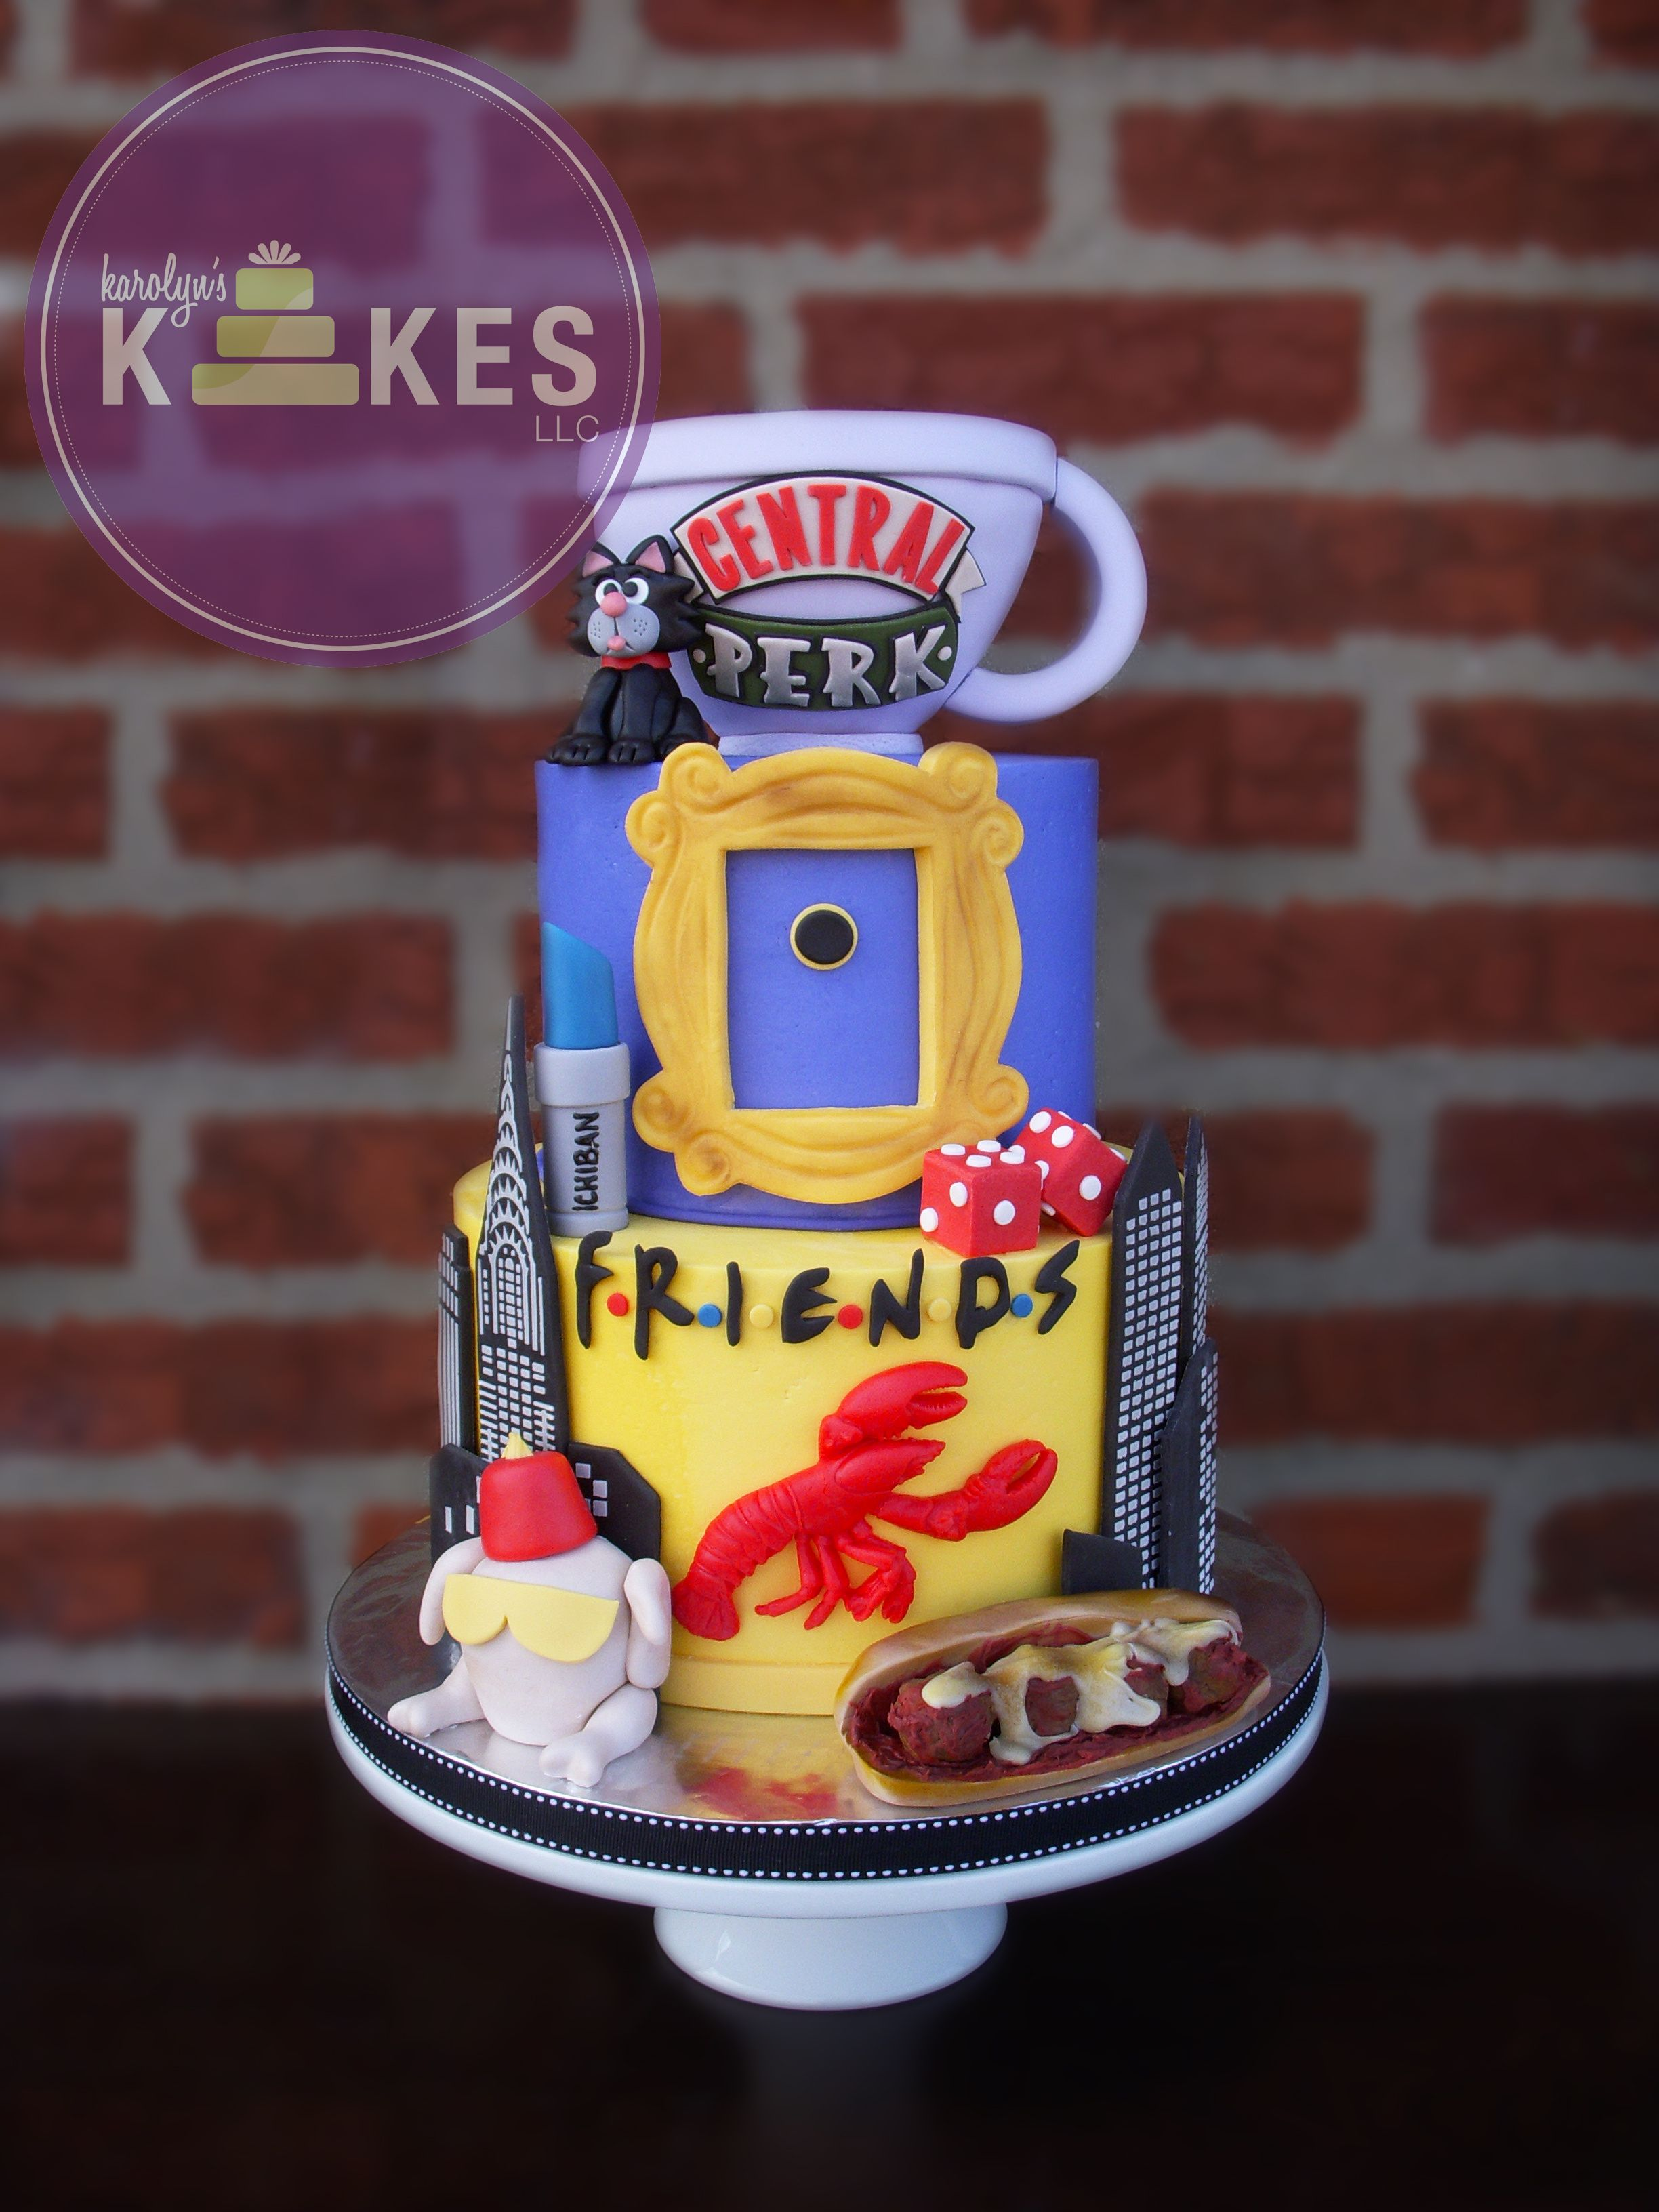 Friends Tv Show Kake I Was So Excited To Make My 3rd Friends Kake As It S My Favorite Show